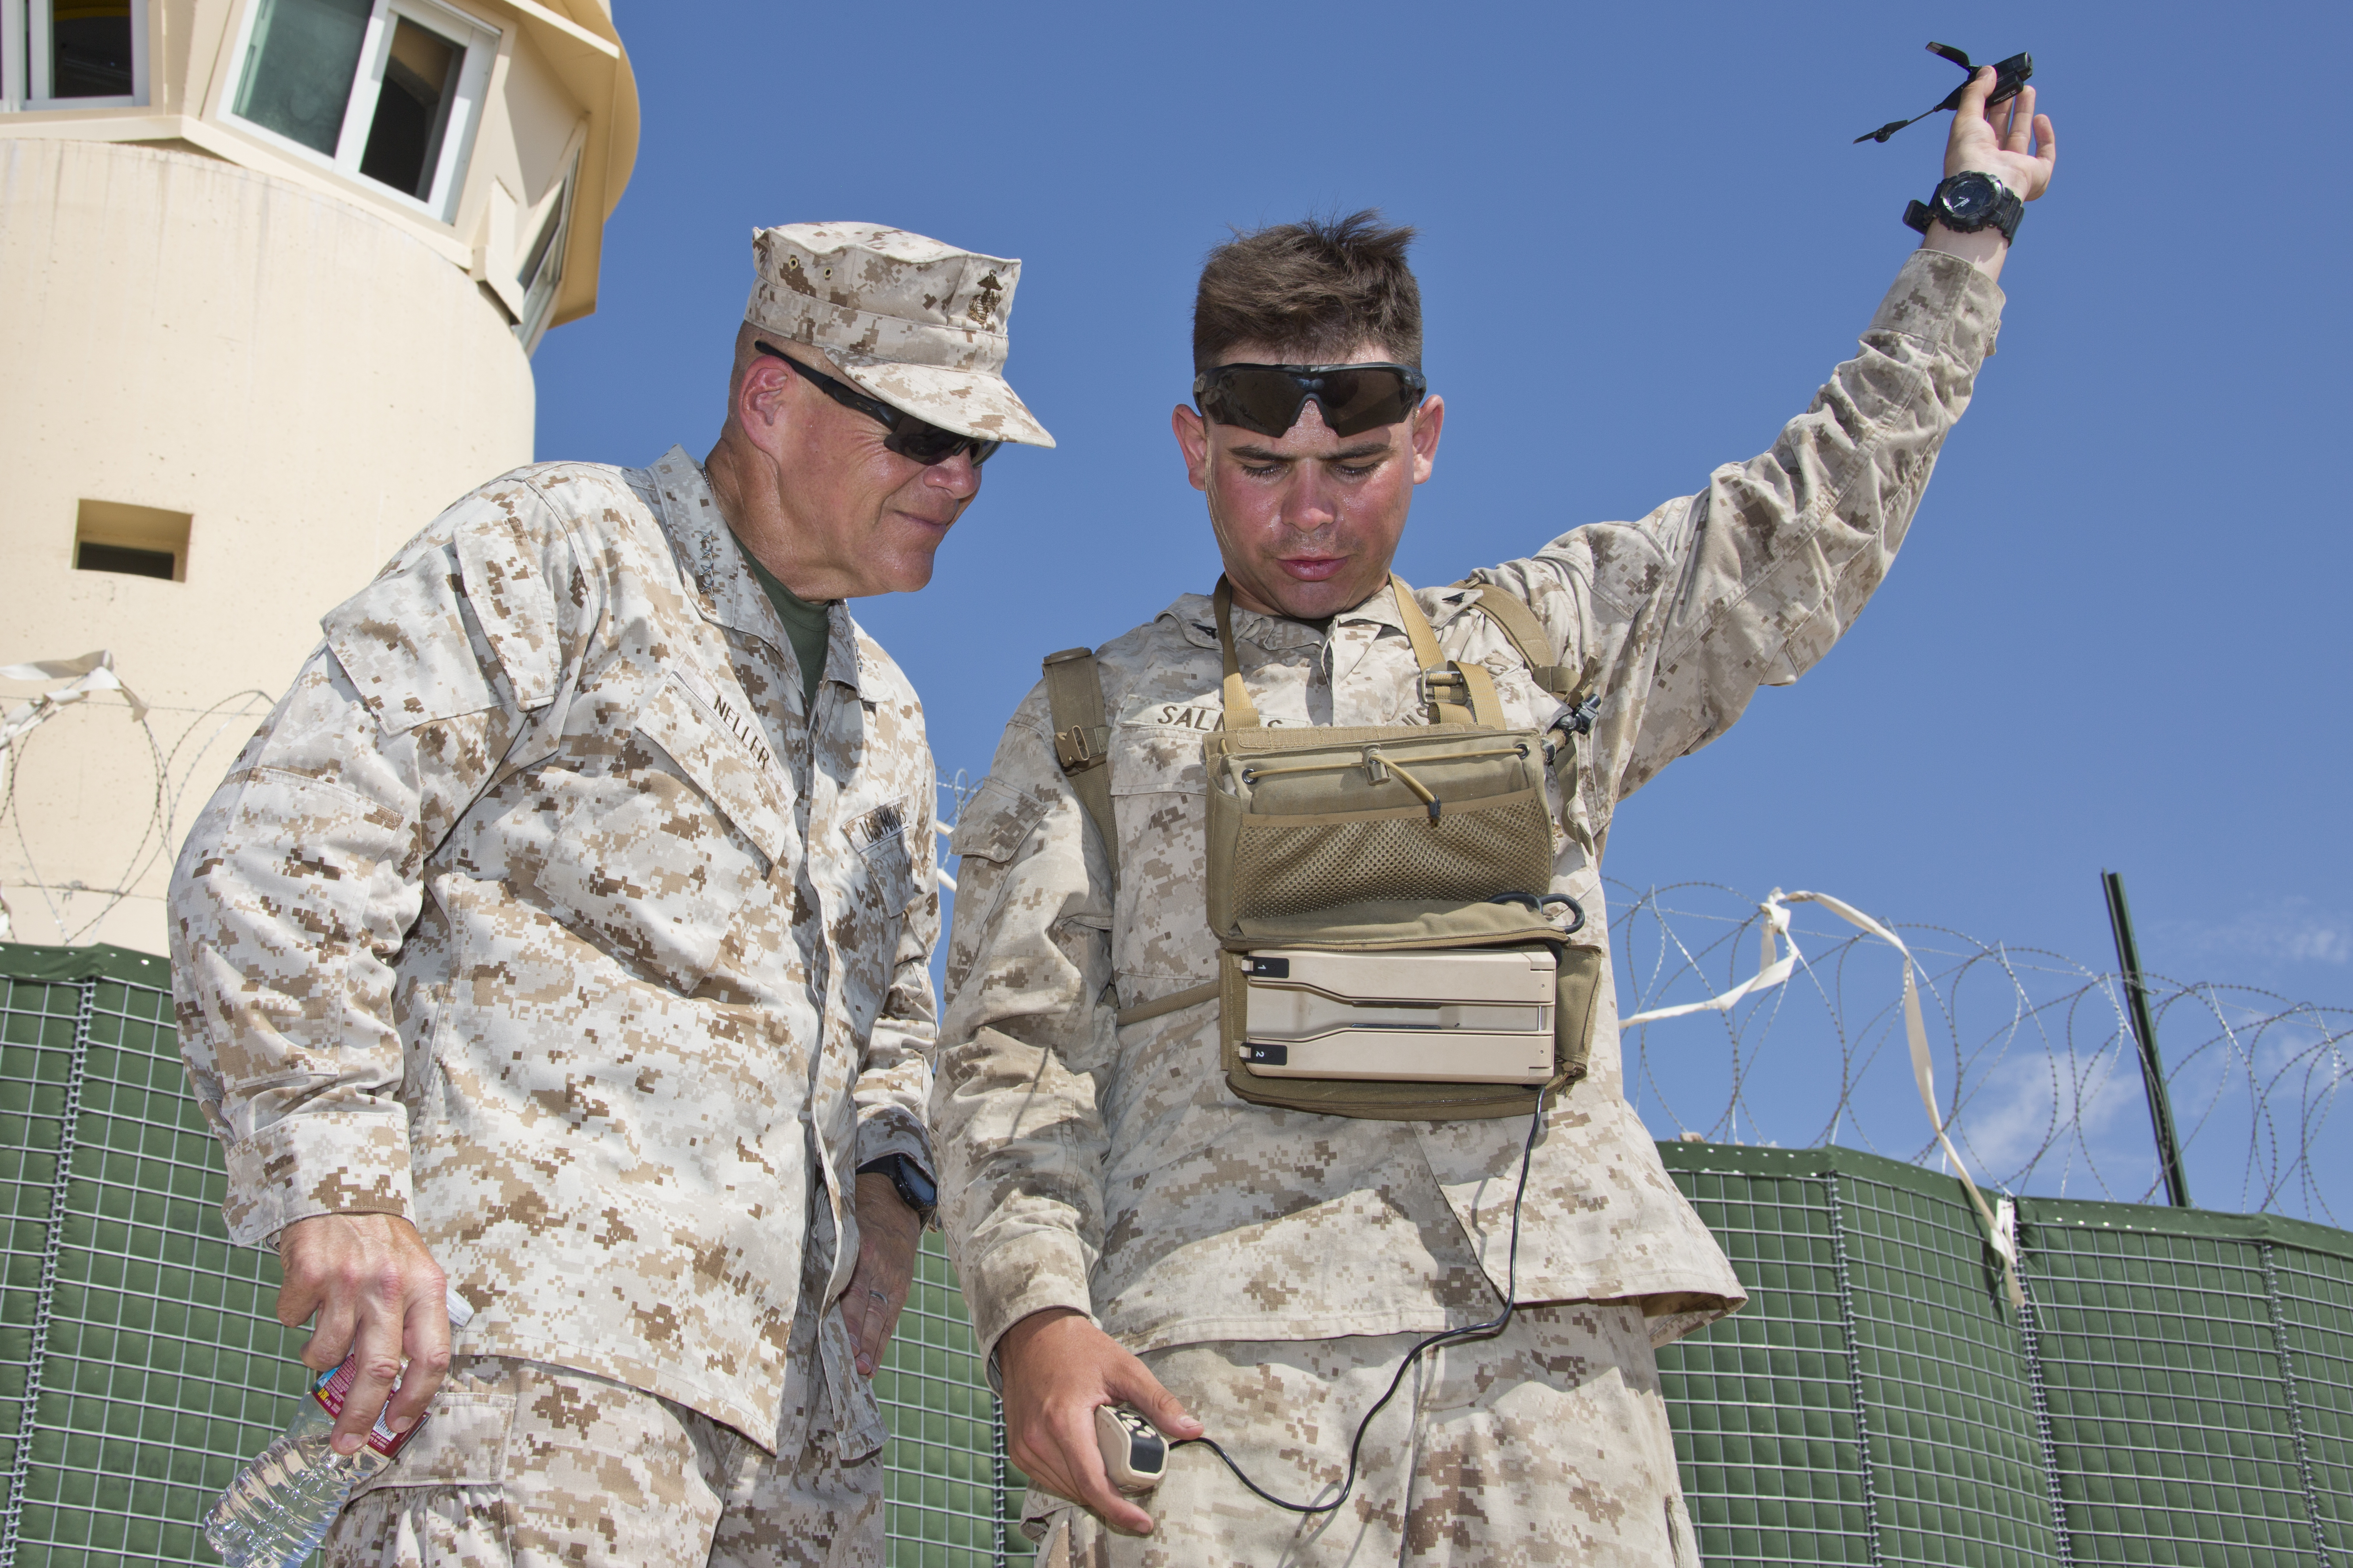 Commandant of the Marine Corps Gen. Robert B. Neller, left, speaks with Lance Cpl. Cesar H. Salinas, unmanned aerial system operator, at Twentynine Palms, Calif., July 28, 2016. Neller visited Twentynine Palms to observe Marines participating in the Marine Air-Ground Task Force Integrated Experiment (MIX-16). US Marine Corps photo.